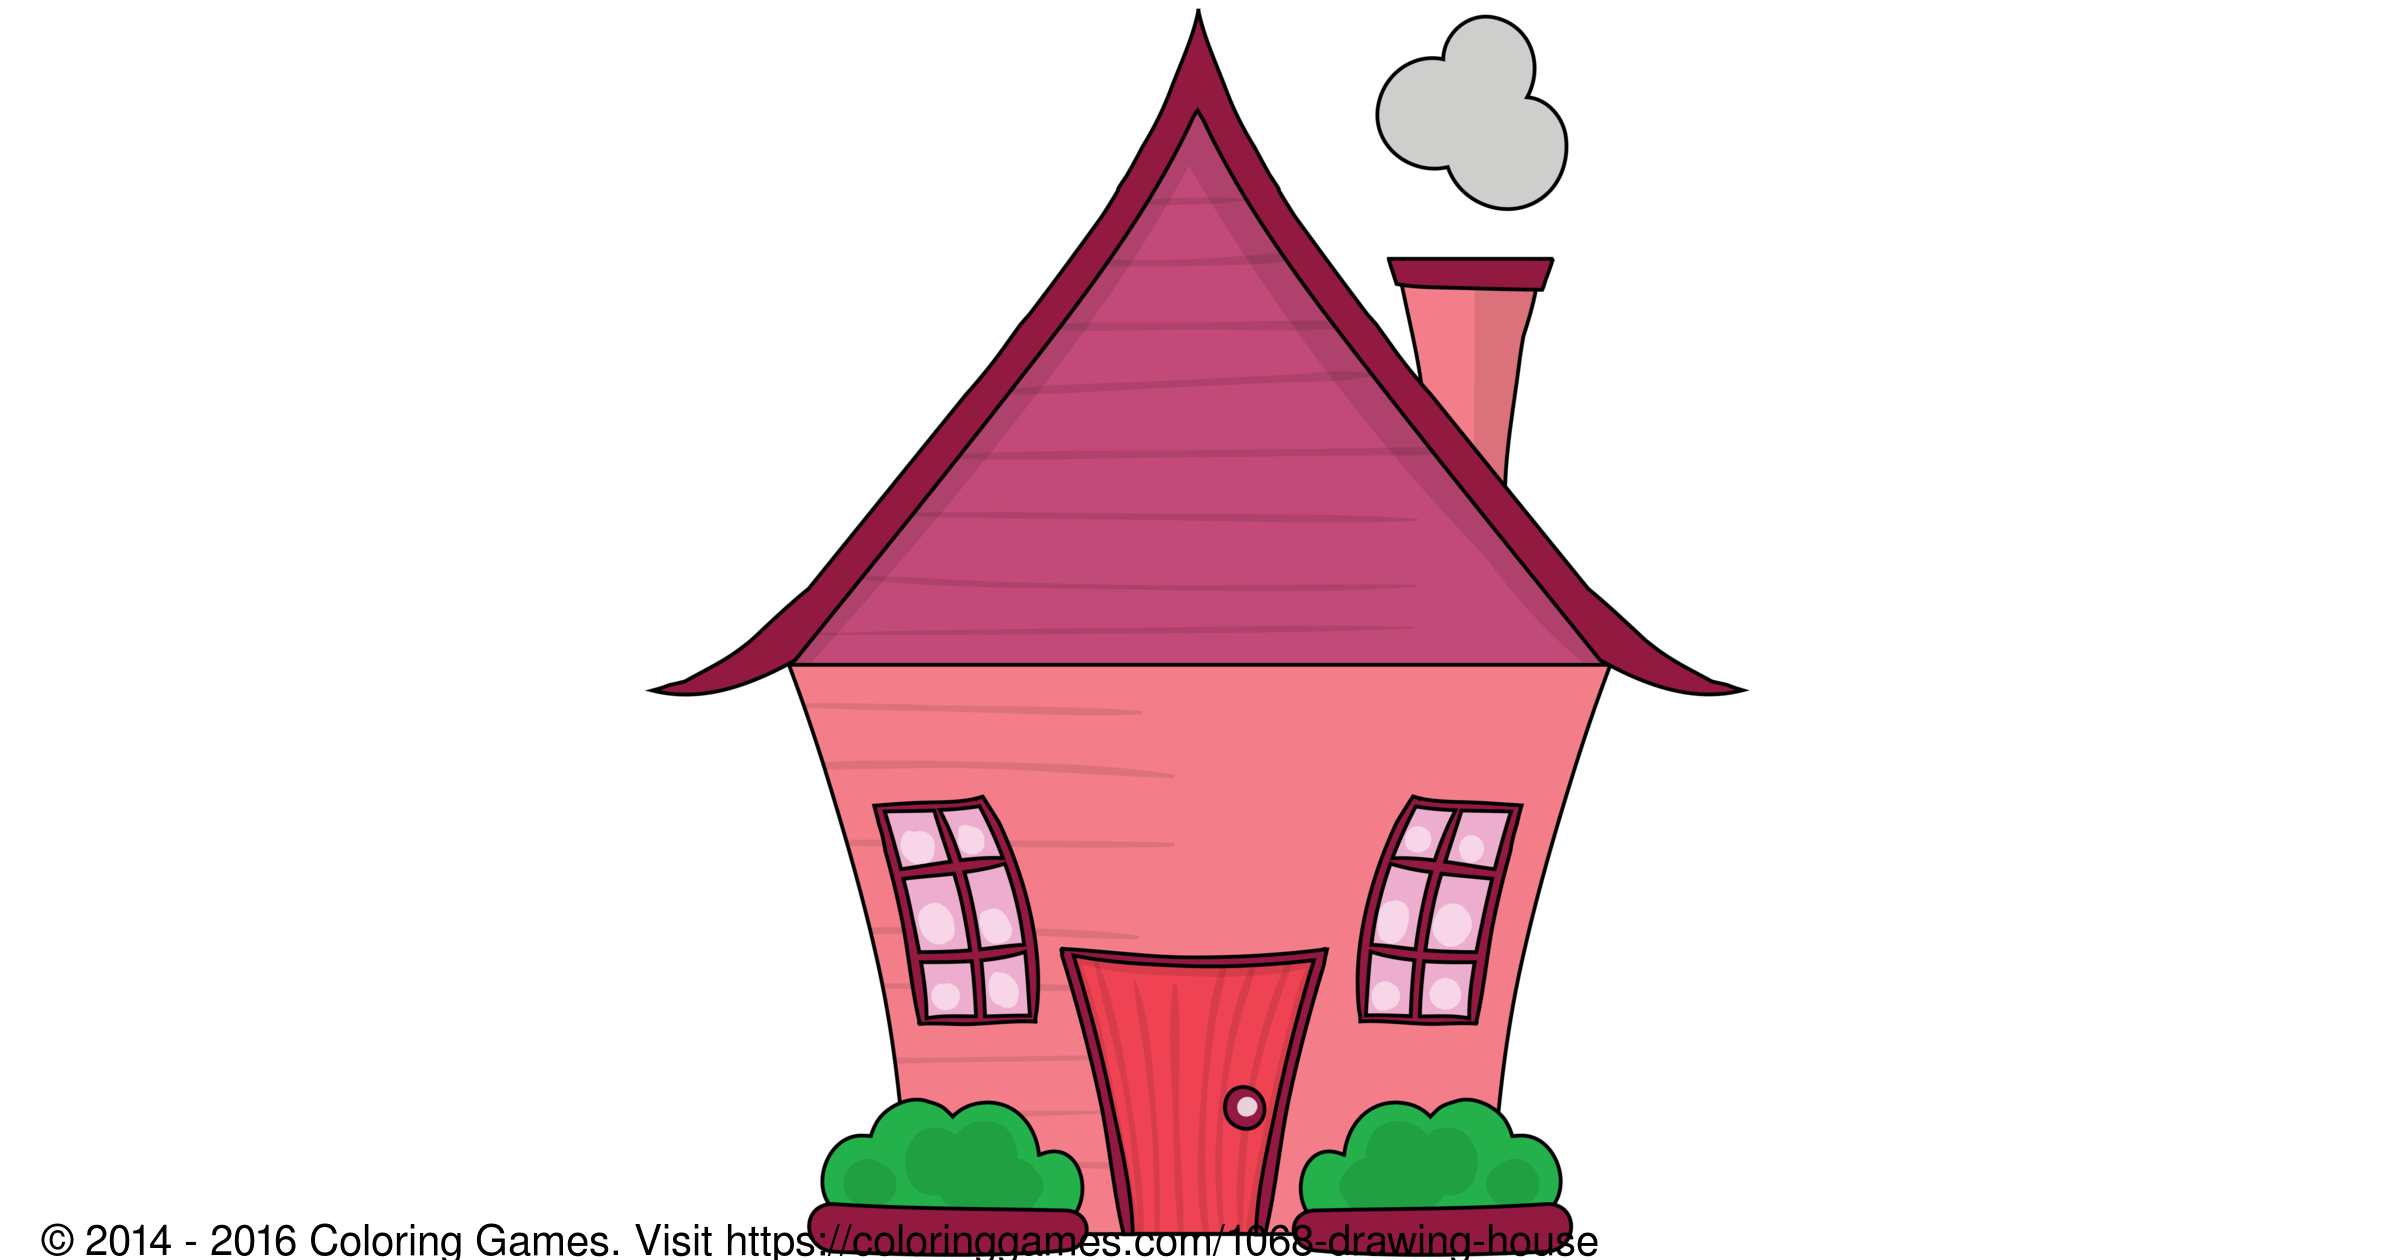 Drawing House - Coloring Games and Coloring Pages